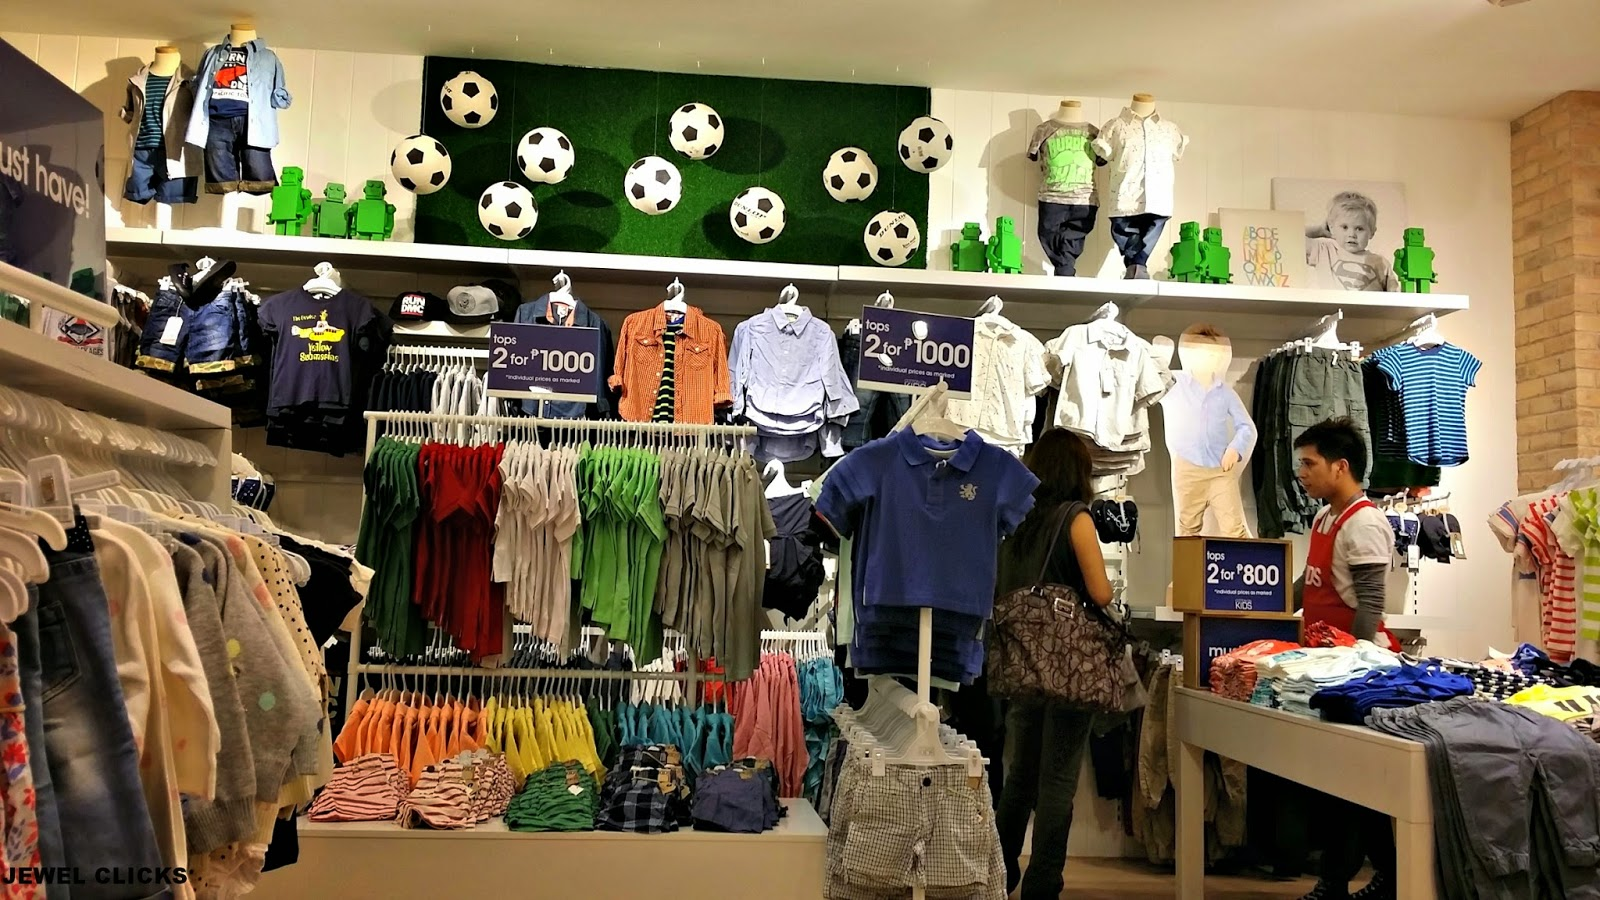 Cotton On – that Aussie retail powerhouse of trendy but affordable fashion – has opened a Cotton On Kids in Hong Kong! Located in TST, it's officially our new first stop for cool threads for the wee ones.